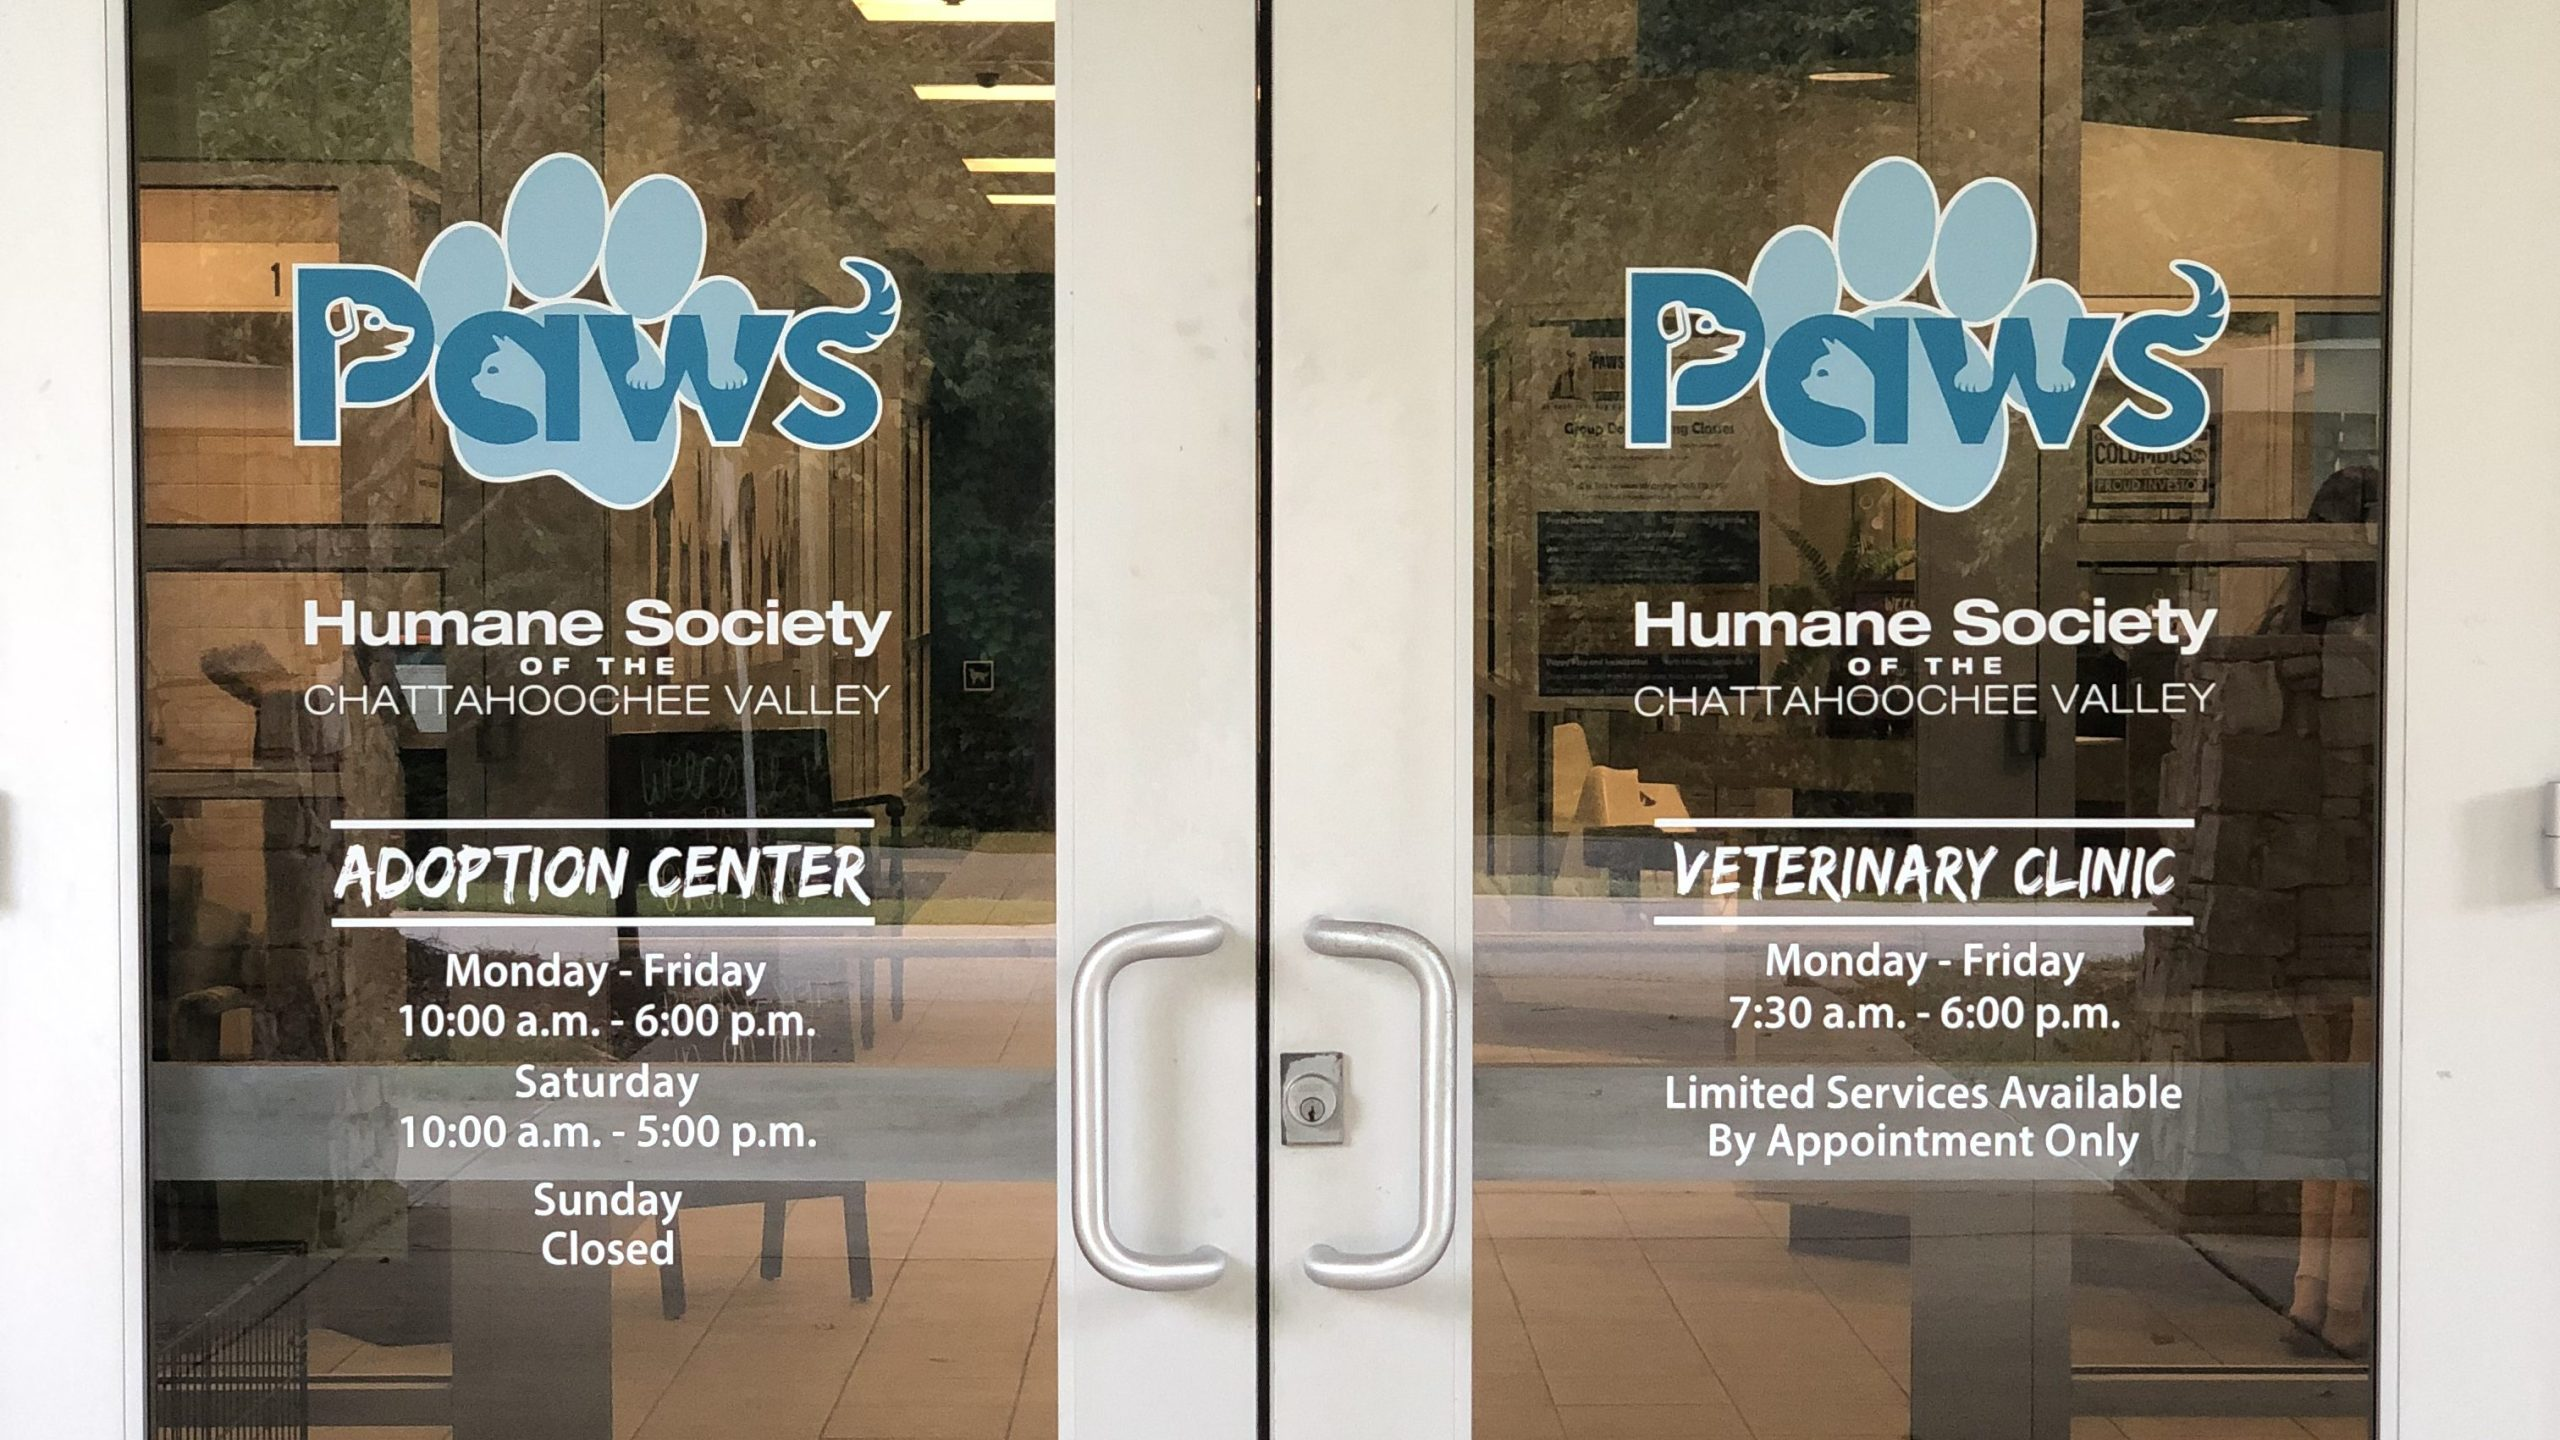 Paws Humane Updates Hours of Operations to Better Serve